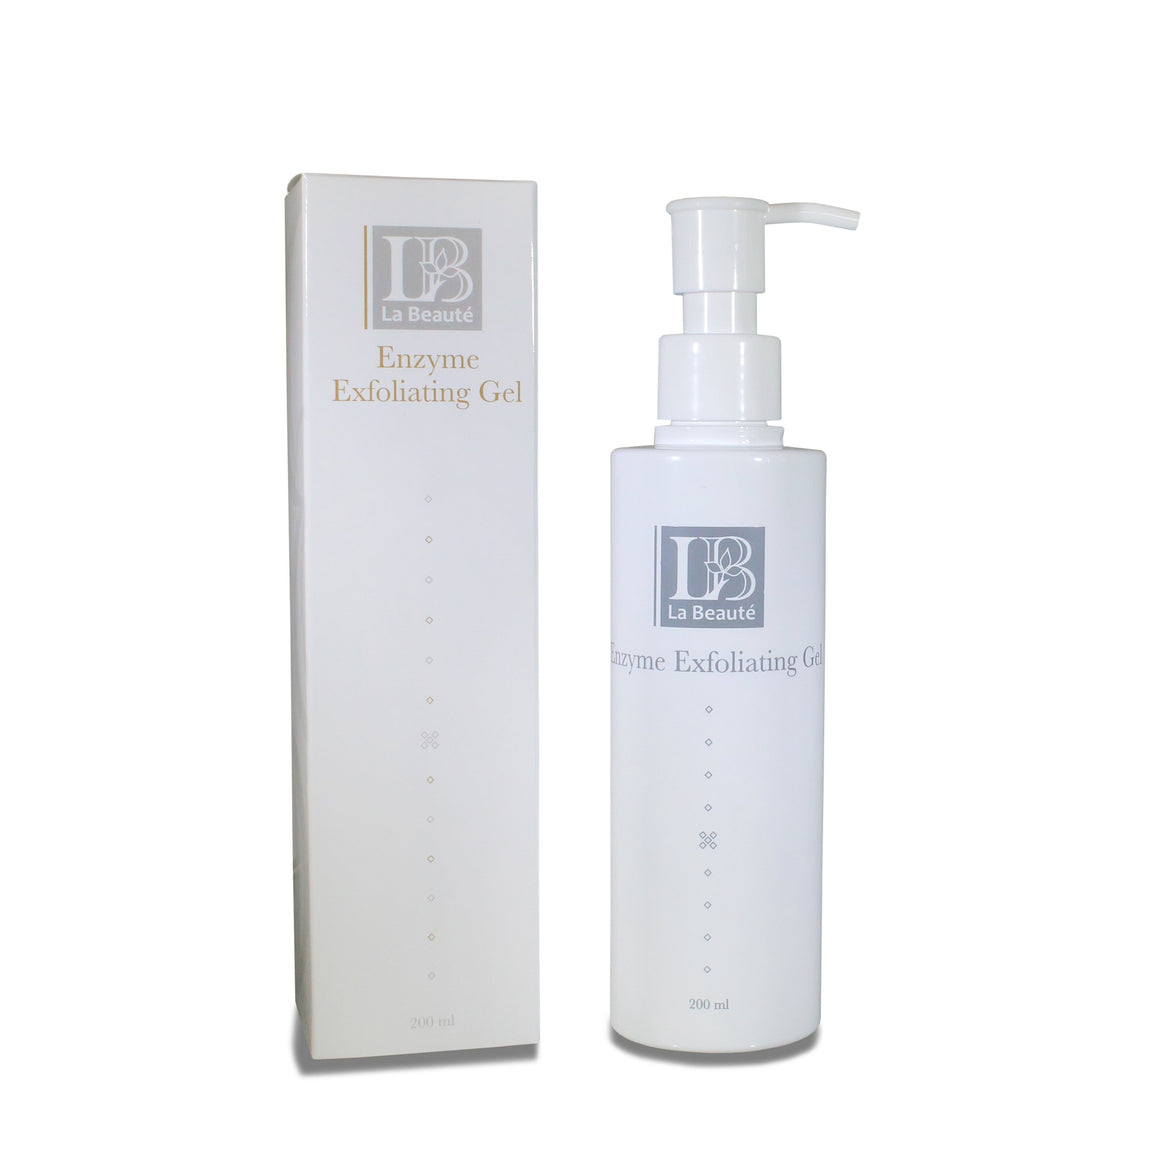 La Beaute -Enzyme Exfo Gel 200ml WS